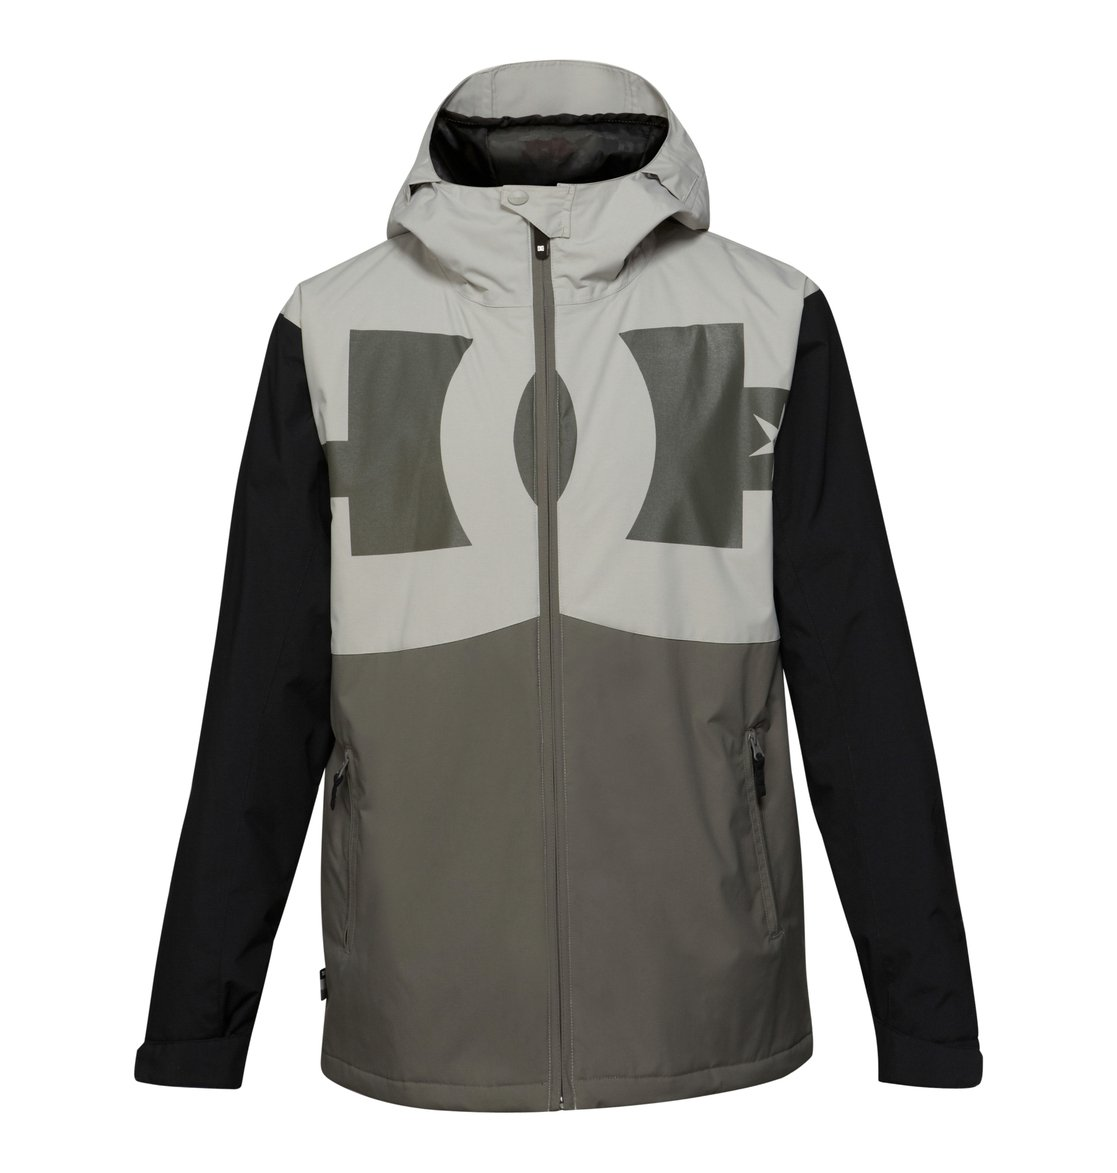 Men's Billboard 15 Snow Jacket EDYTJ00012 | DC Shoes